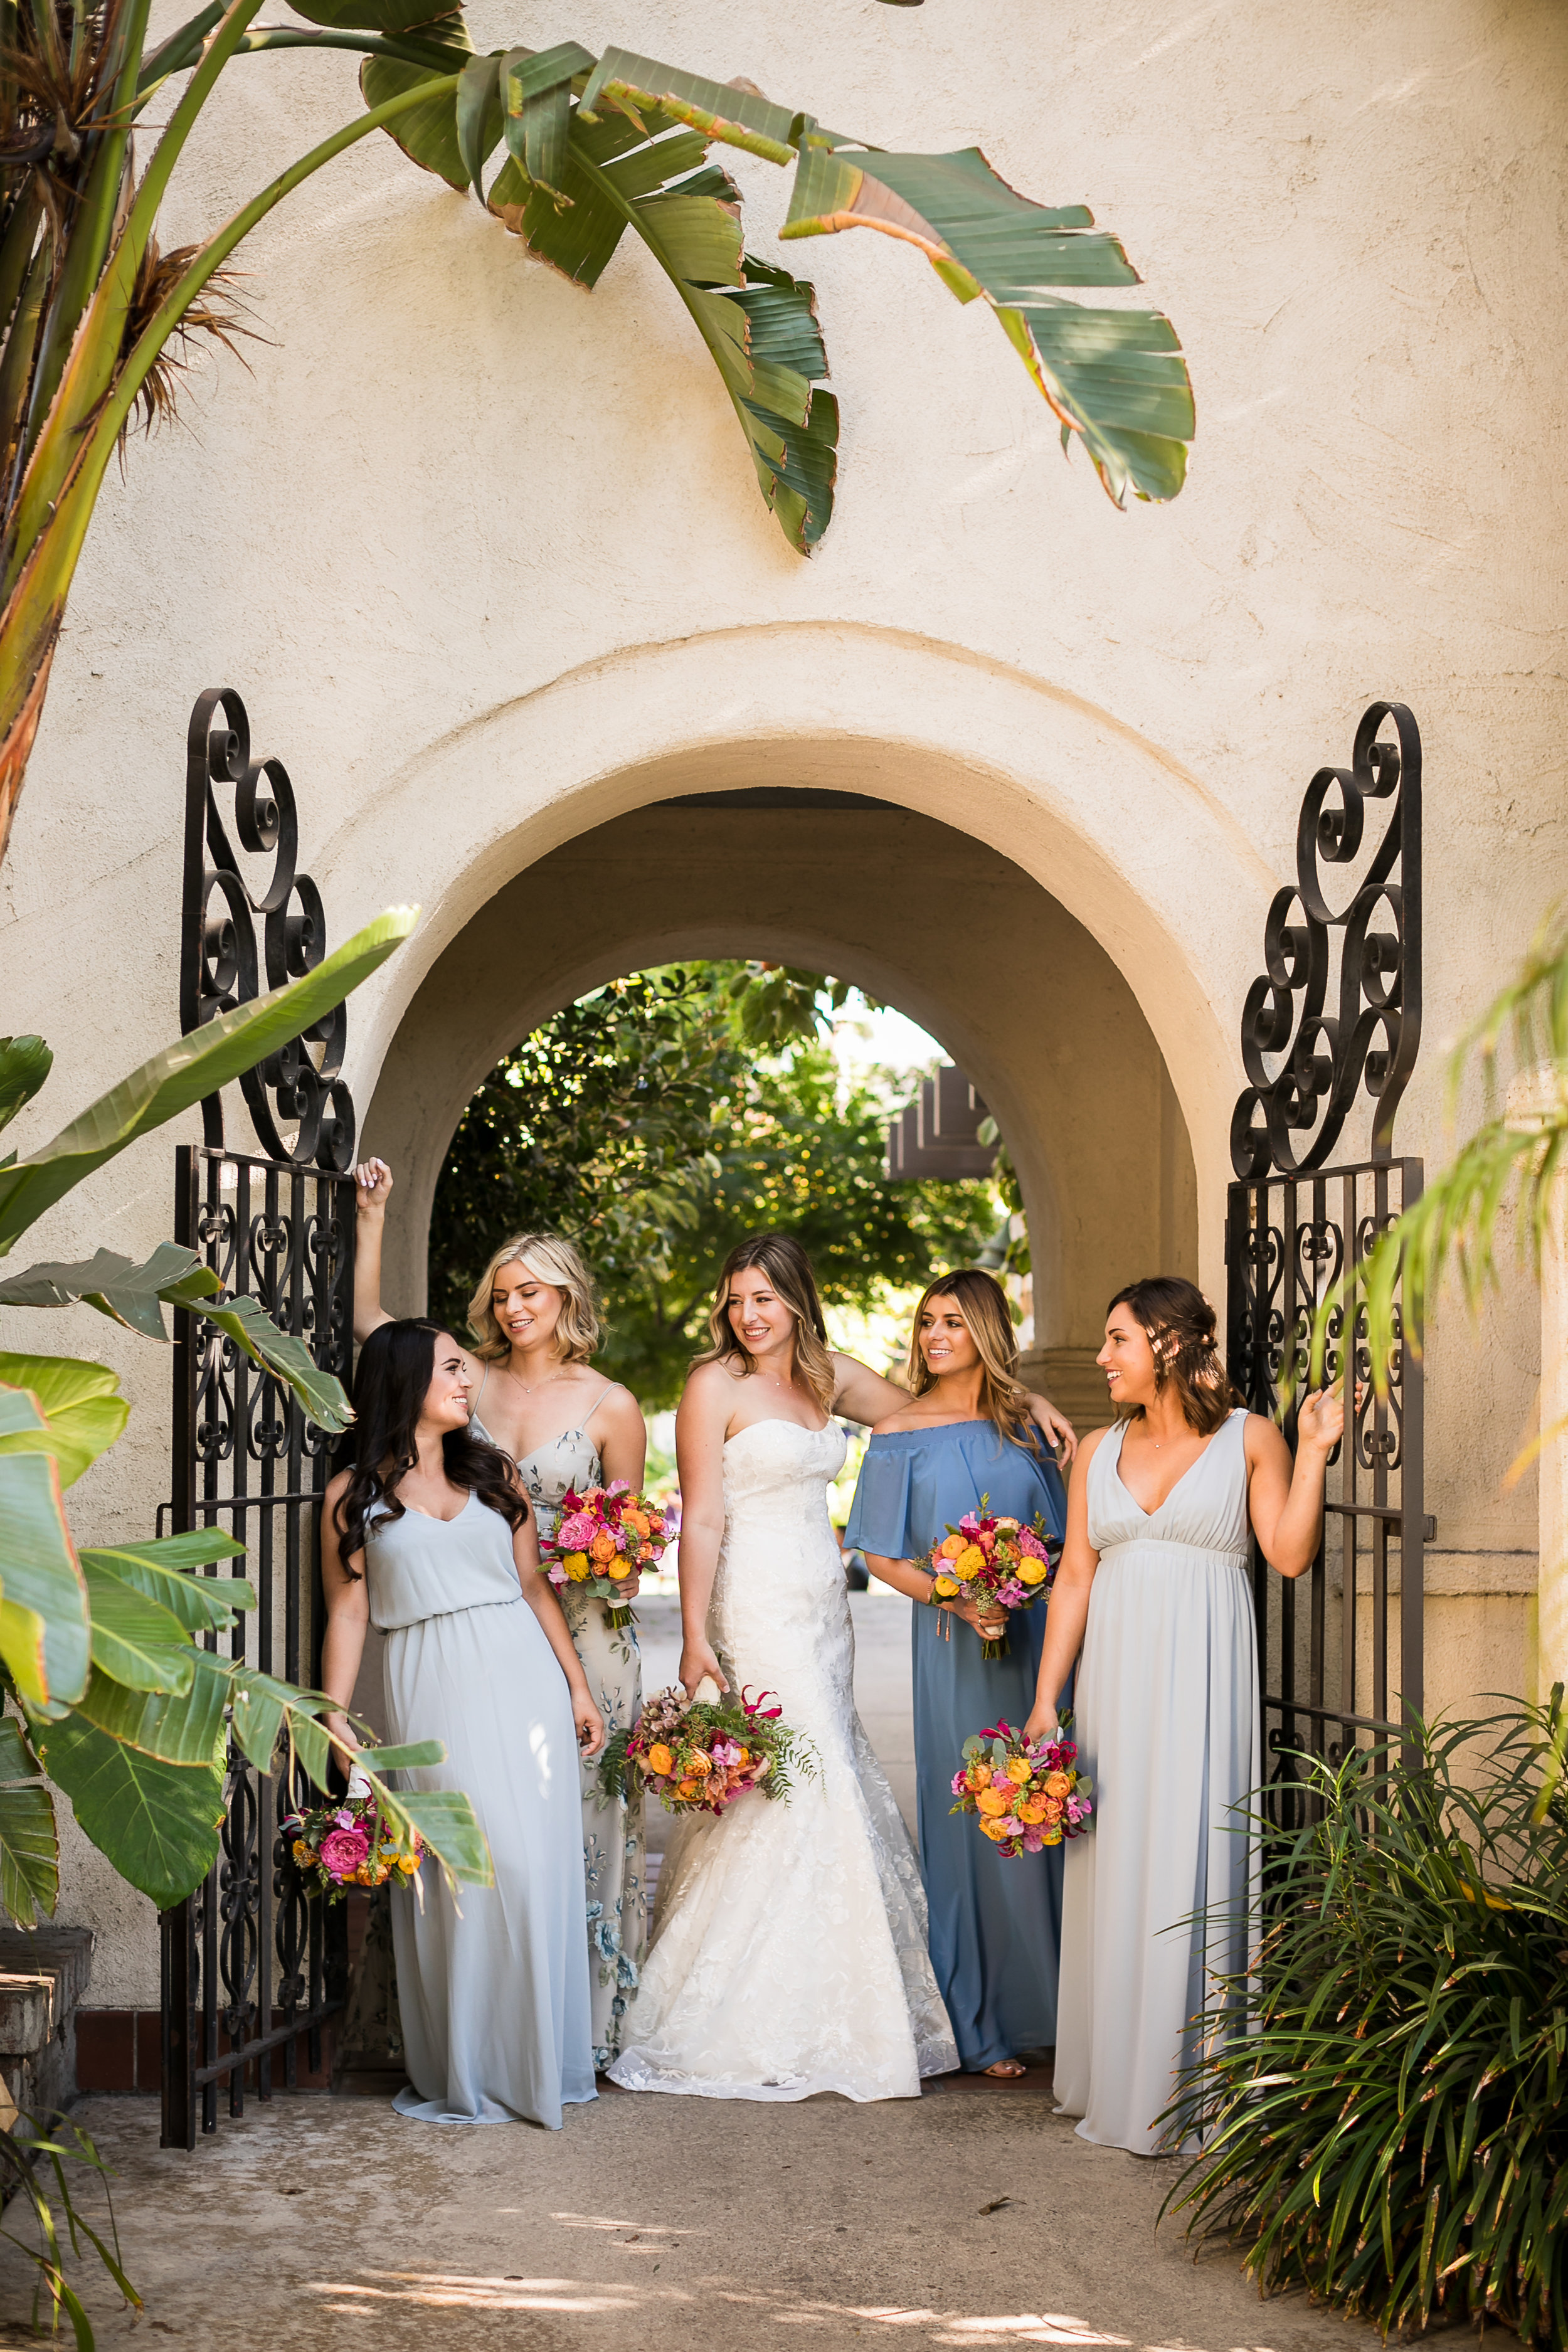 BP-Los-Angeles-River-Center-and-Gardens-Wedding-Photography 345.jpg